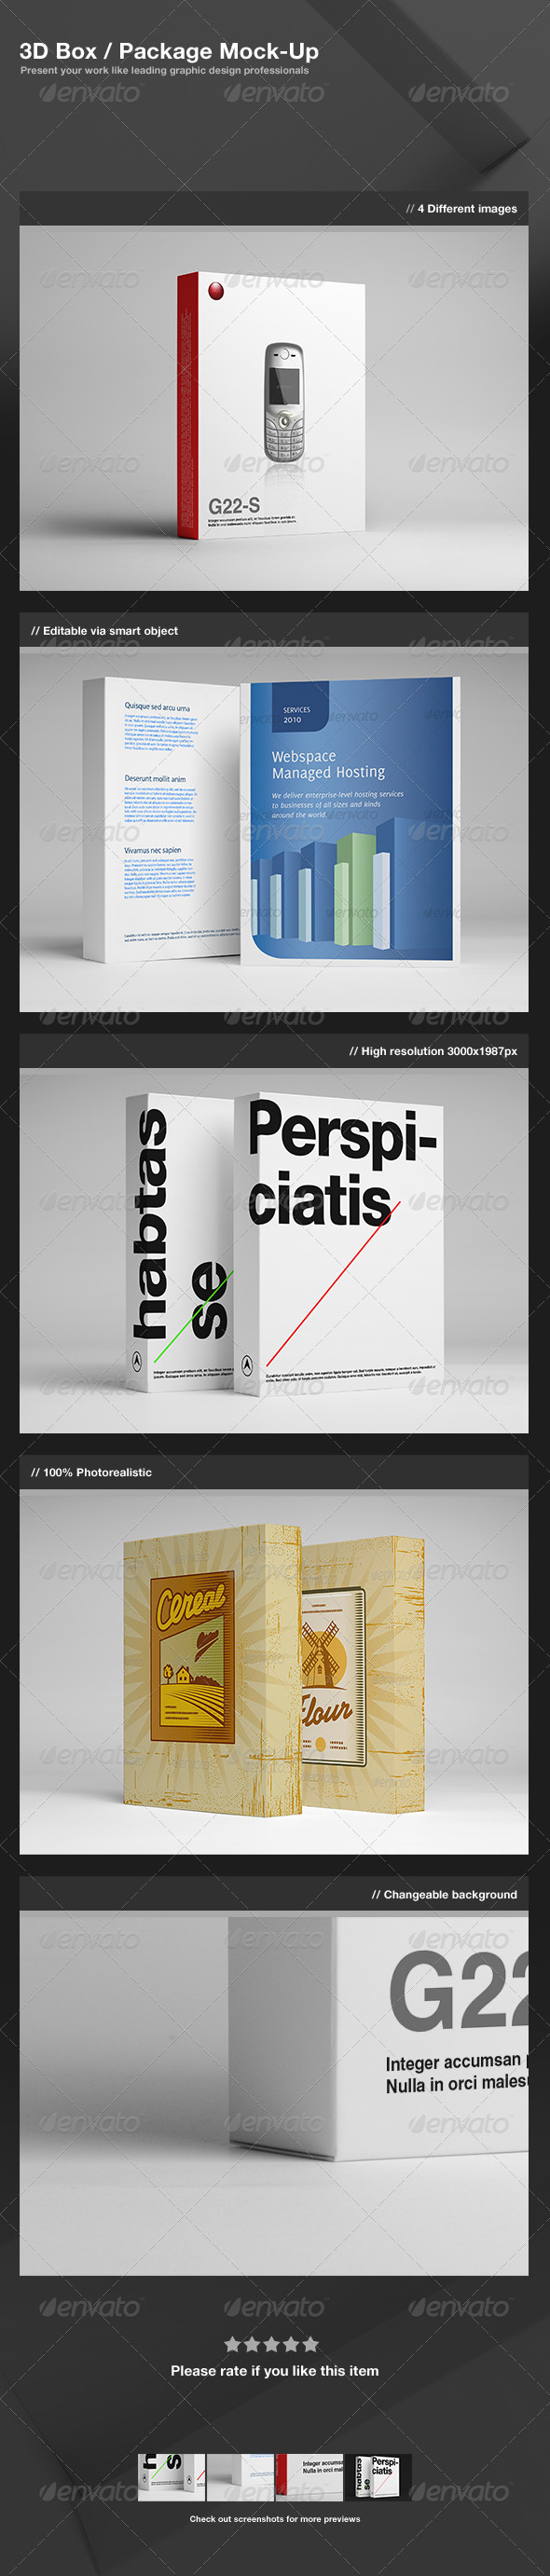 3D Box Package Mock-Up